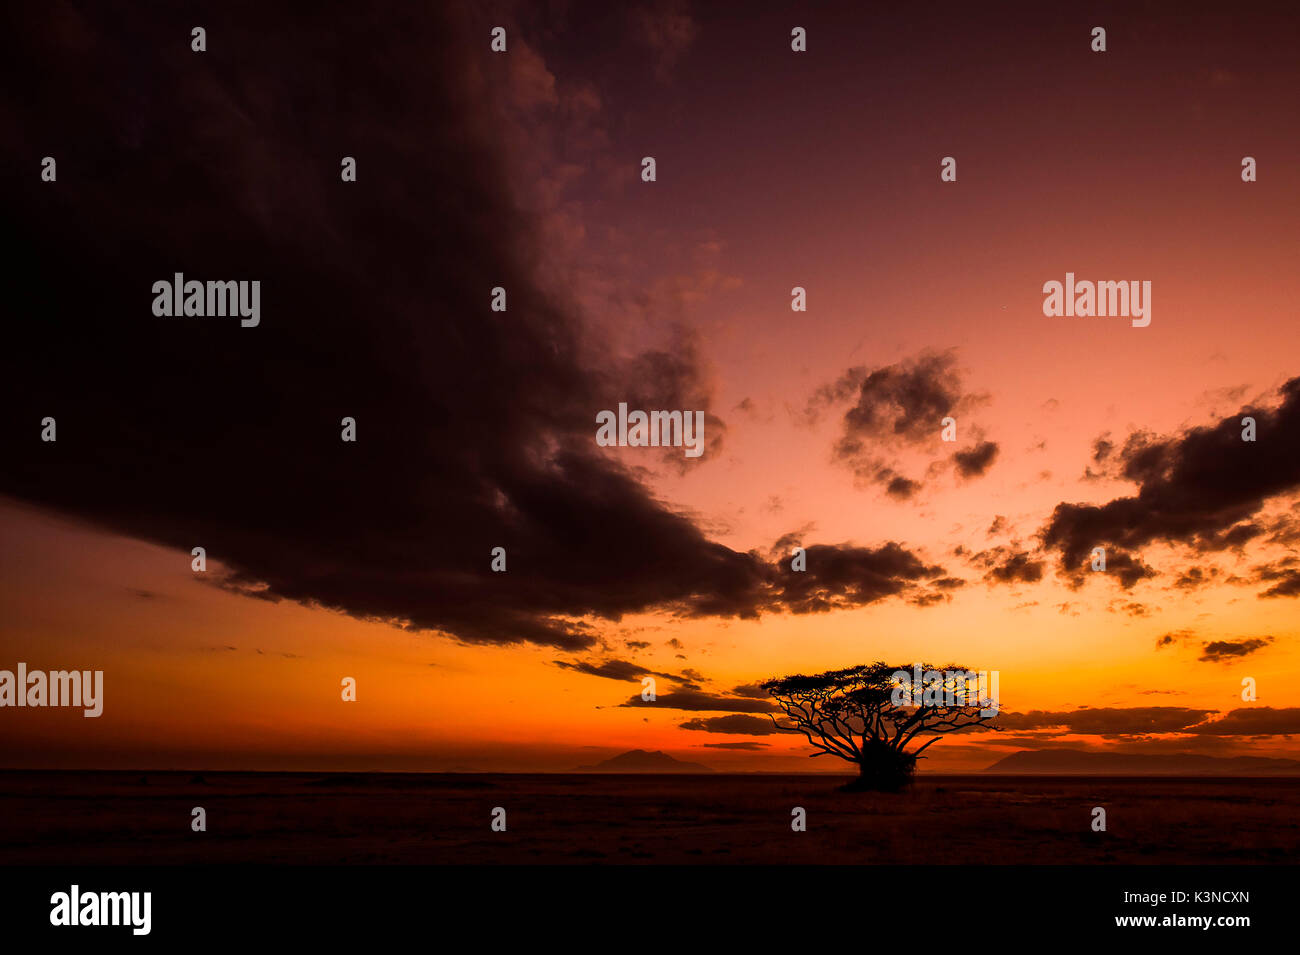 Amboseli Park,Kenya,Africa A classic African sunset, with its warm colors - Stock Image